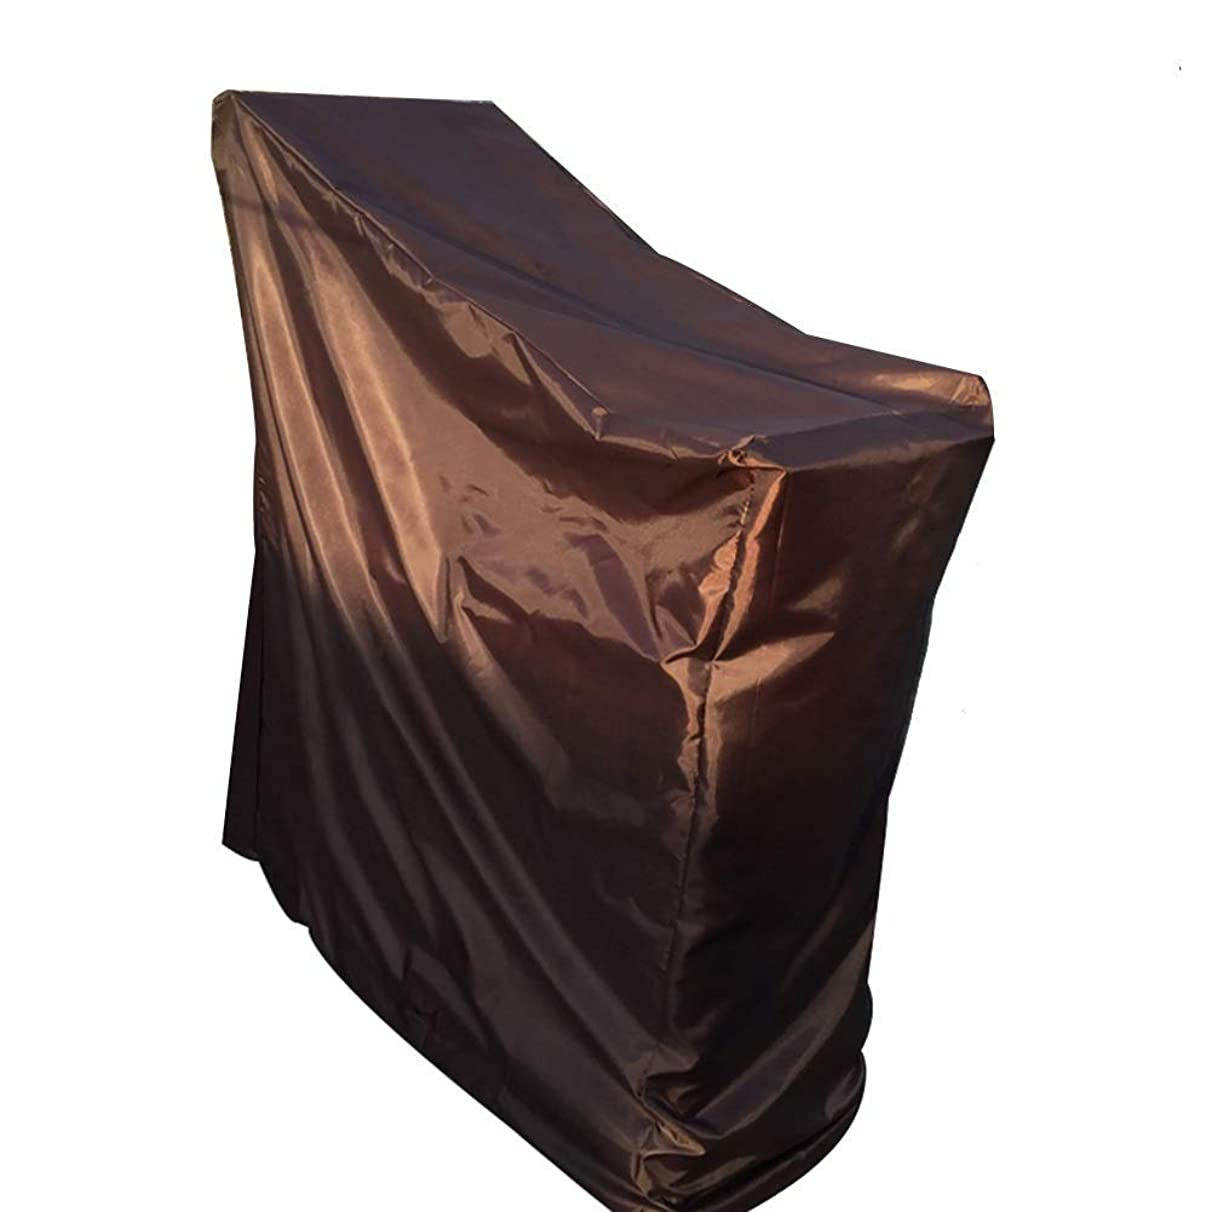 Courtyard Protection Cover/Tarpaulin Spinning Bike Dust-Proof Moisture Proof Scratch Proof, Oxford Cloth, WenMing Yue, Brown, 100x50x120CM